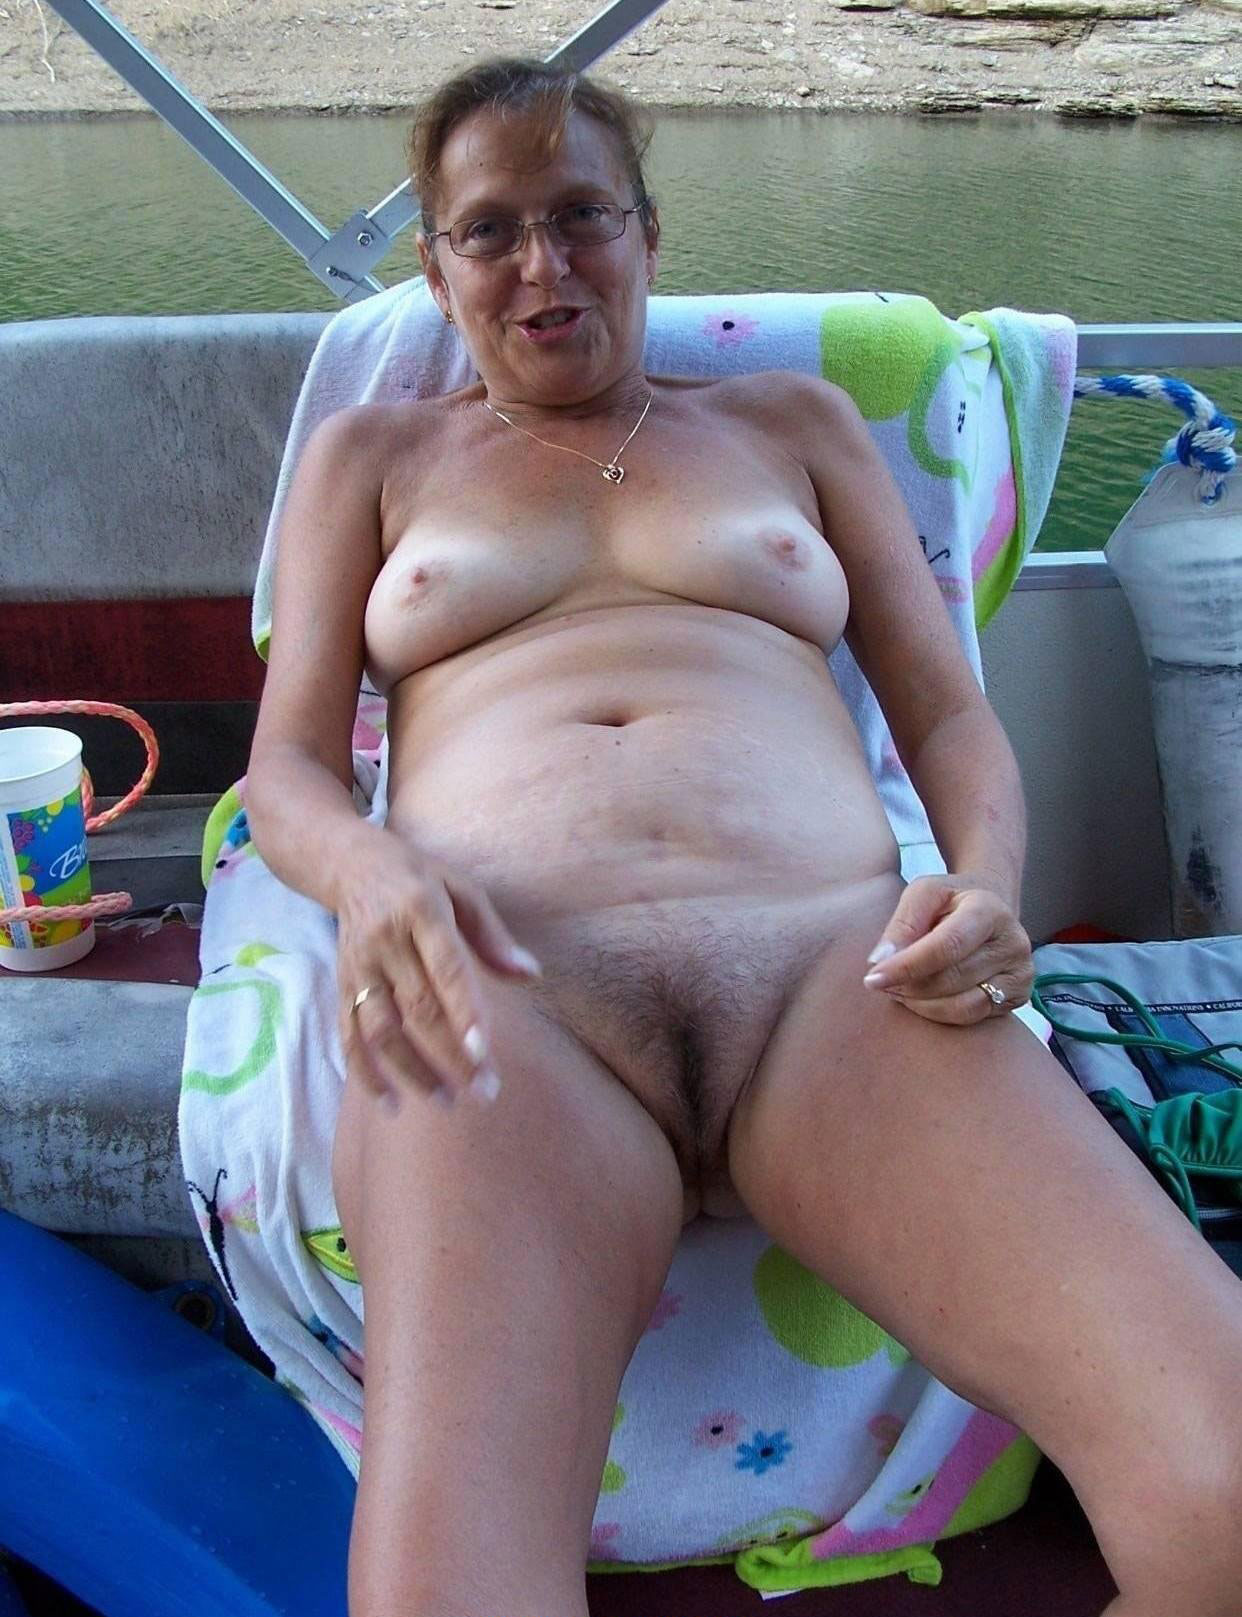 All Granny Porn gramateurs huge collection of hottest mature and granny